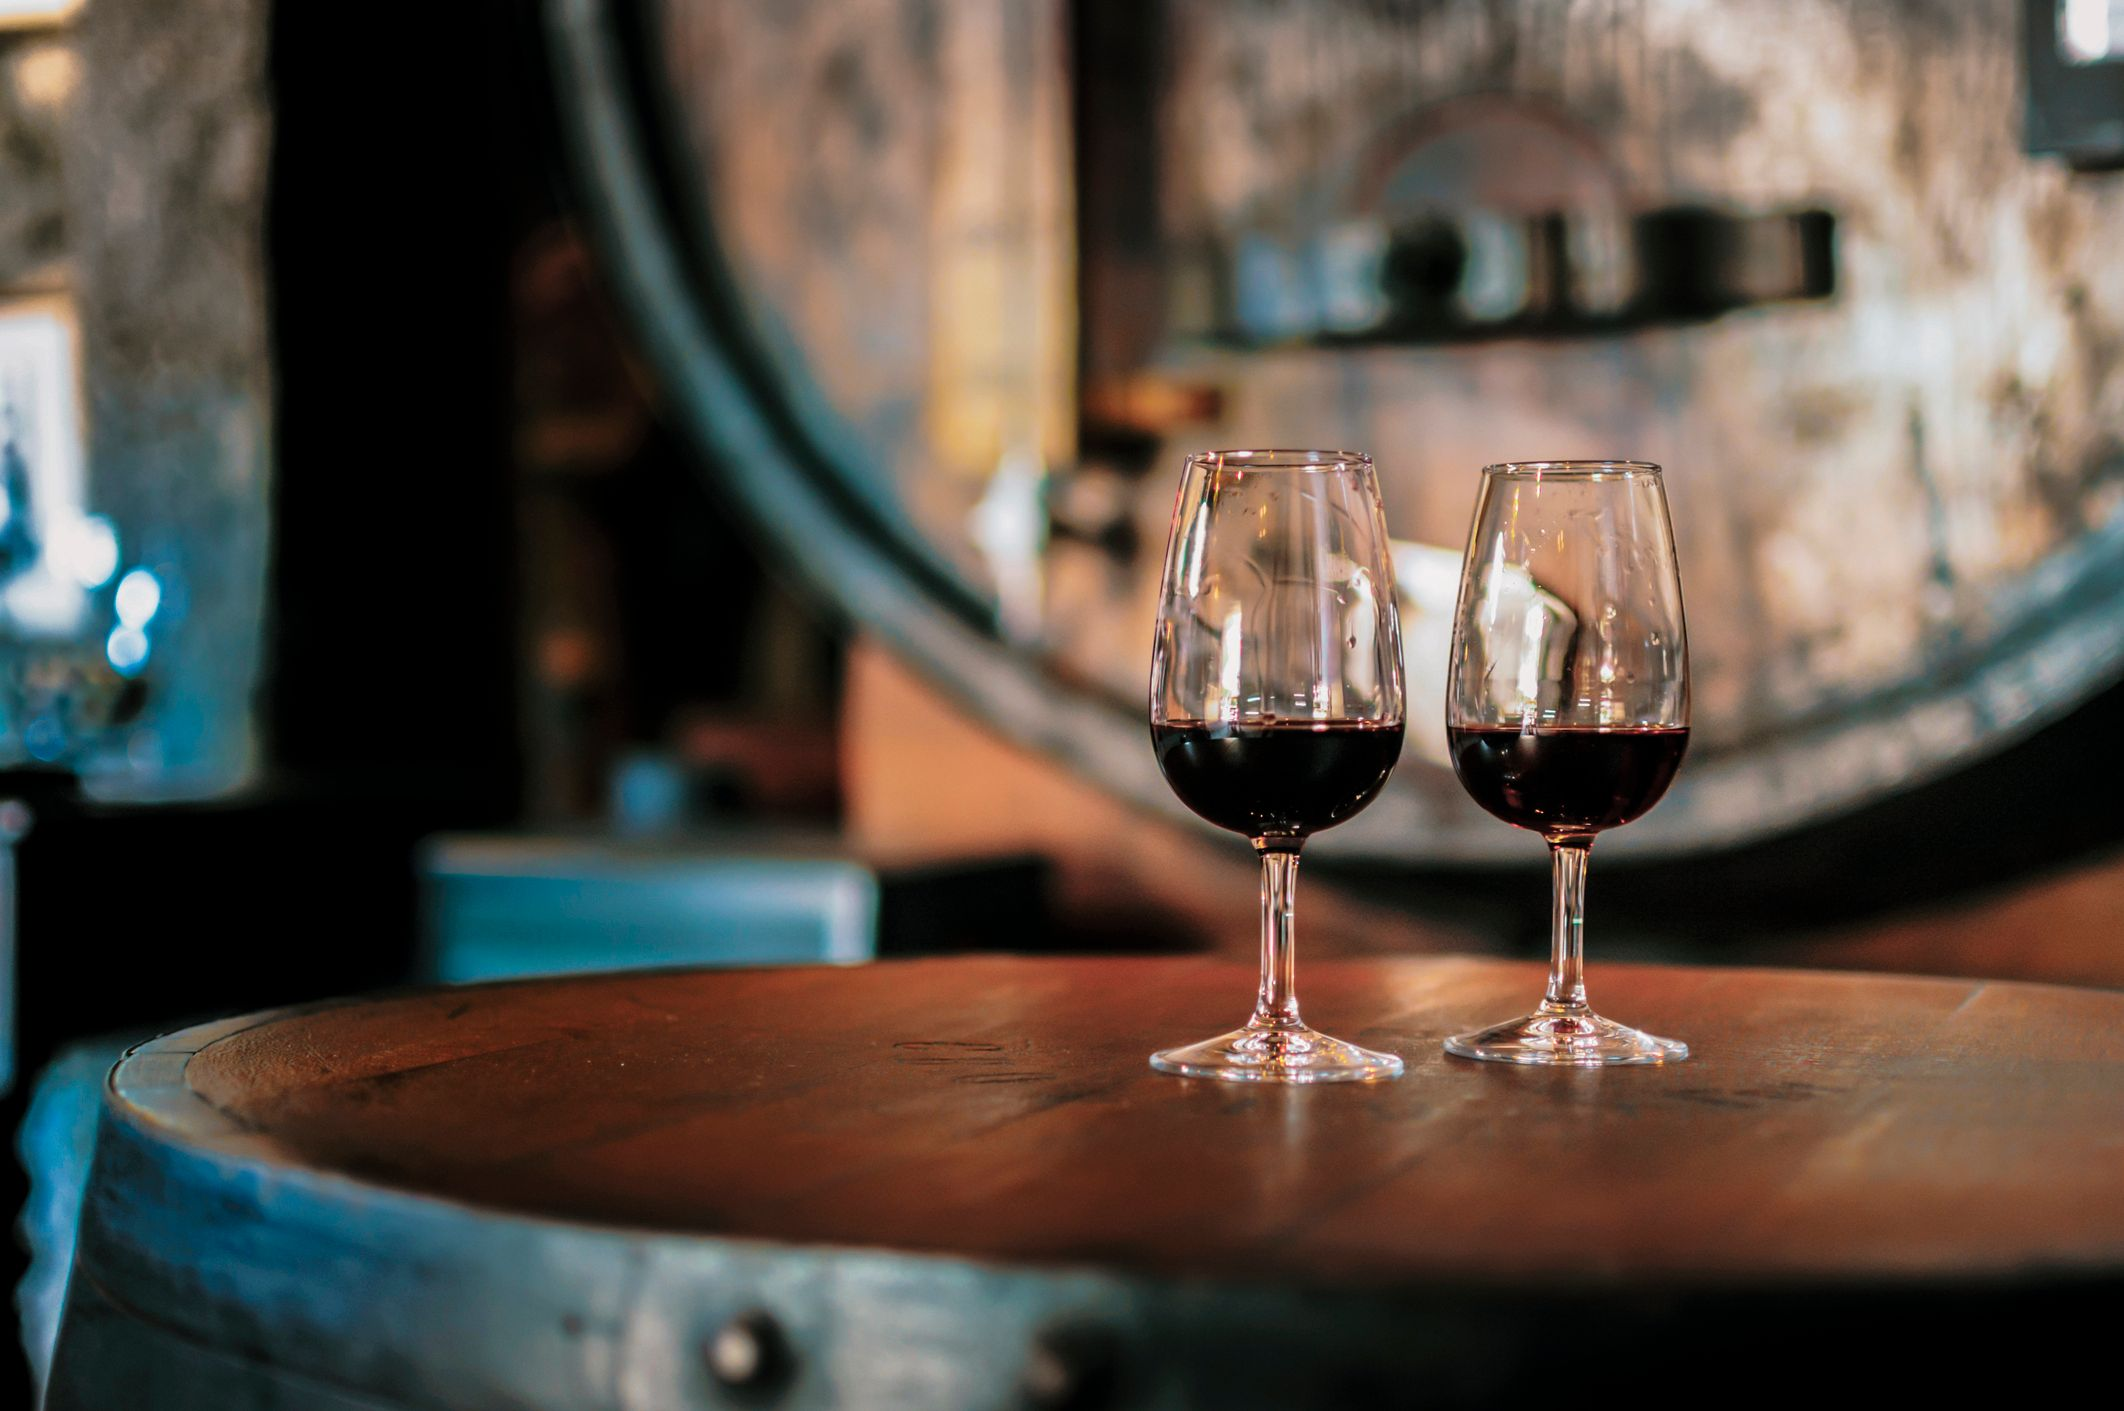 Close-Up Of Alcoholic Drinks Served On Wooden Table In Restaurant. | Foto von: Stock-Fotografie via Getty Images